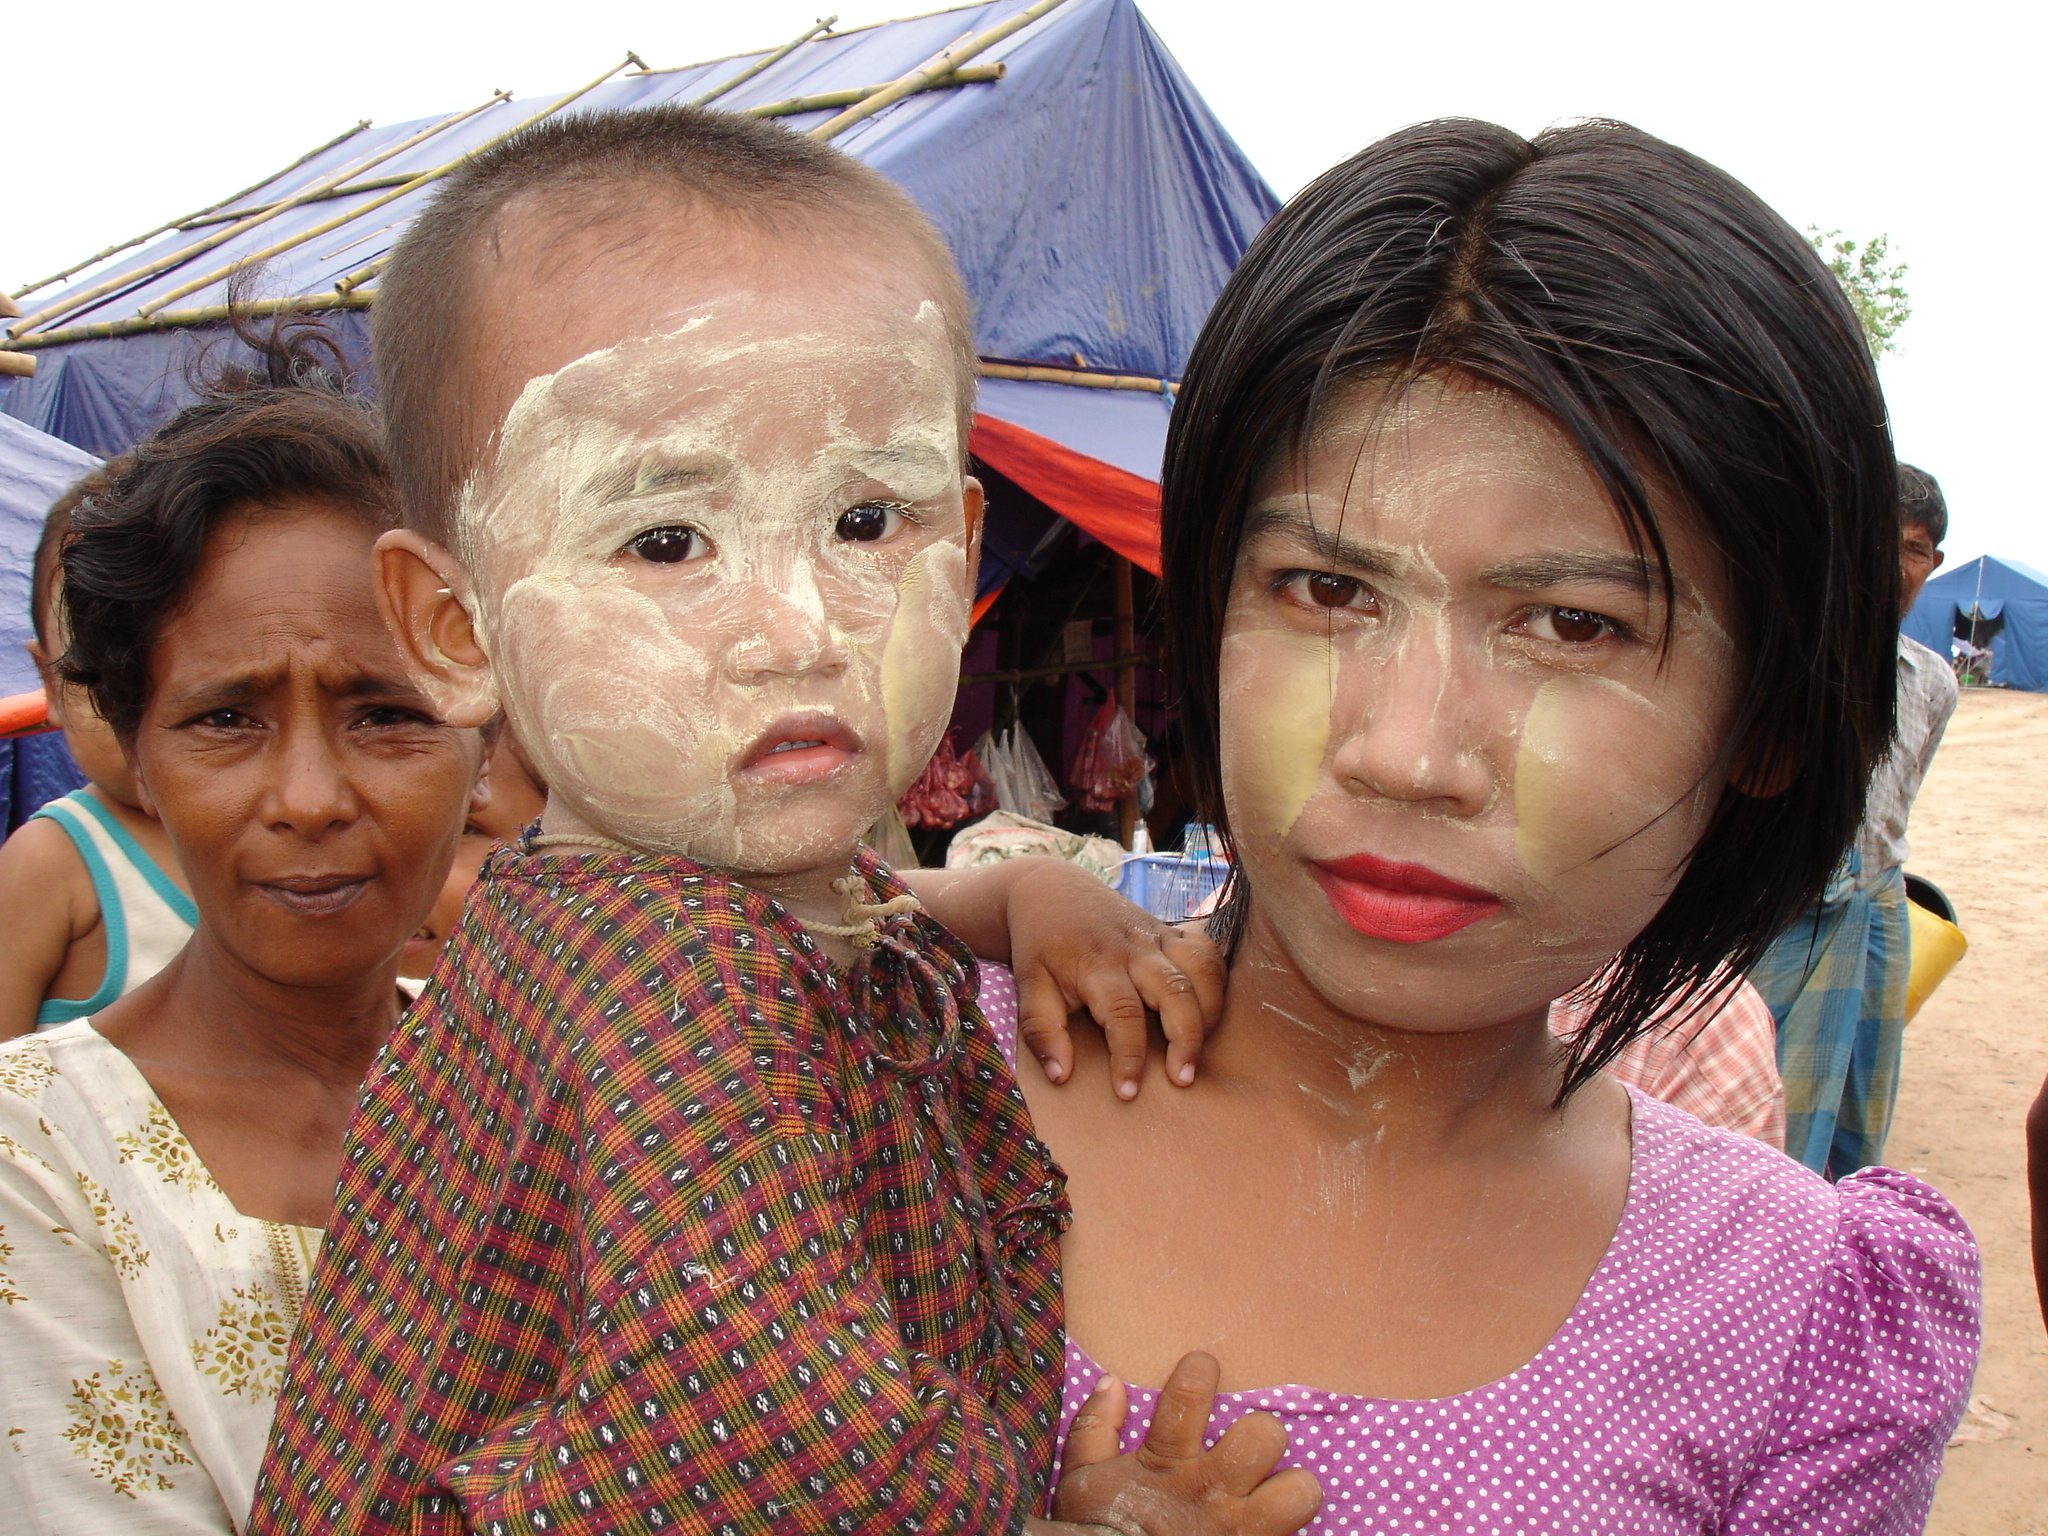 A young mother and her child at a displaced persons camp on the outskirts of Labutta, southern Myanmar. Thousands of people were displaced by Cyclone Nargis when it slammed into the Ayerwadyy delta in May 2008, leaving more than 138,000 dead or missing.